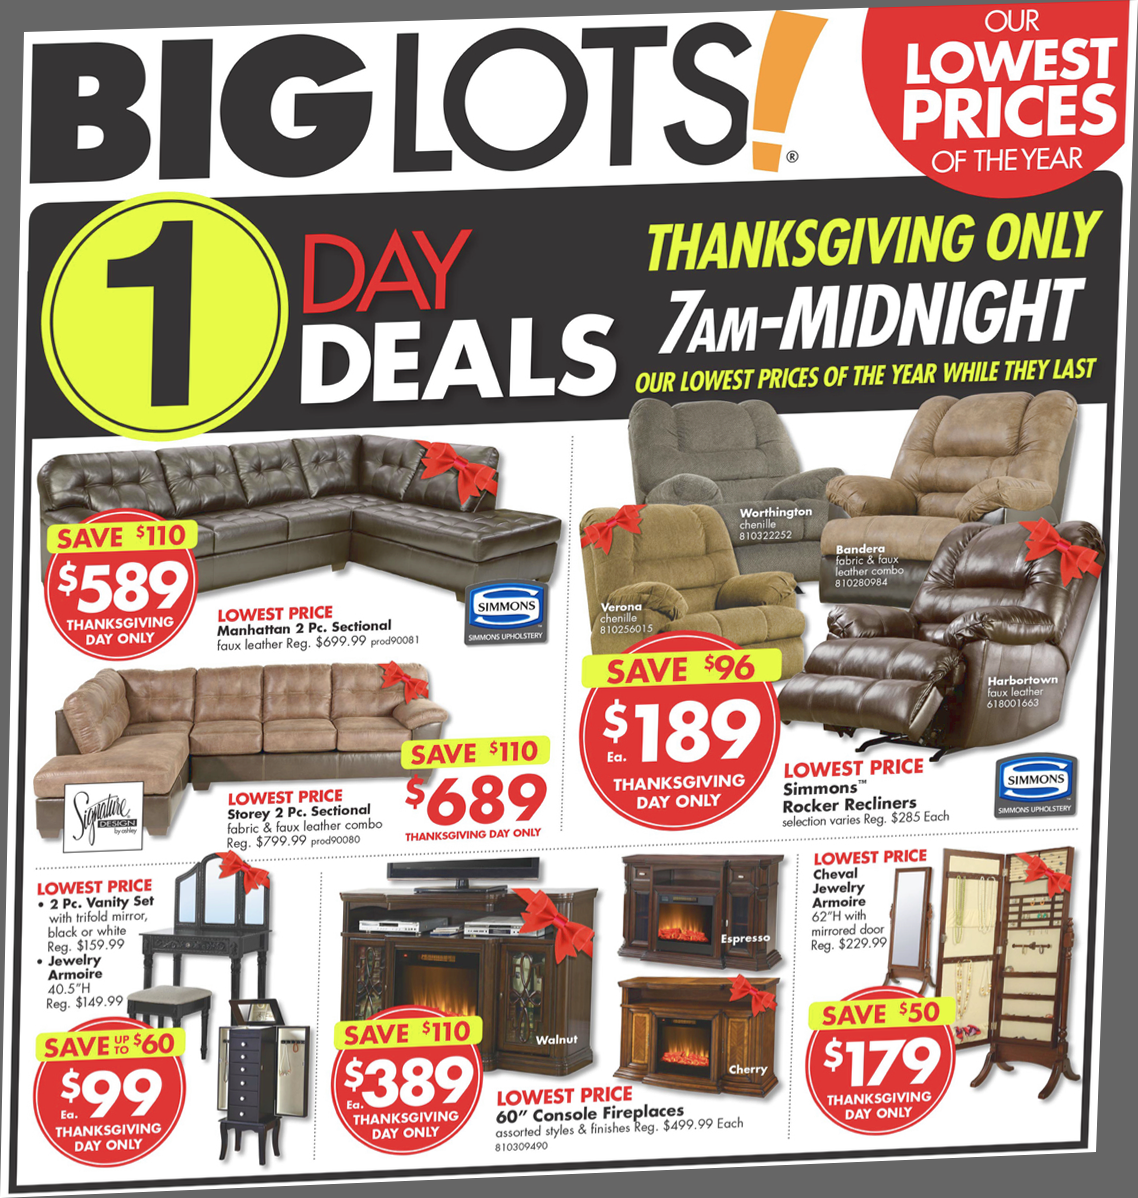 Nov 29,  · Big Lots in Tifton, Georgia has already opened. It is located on Virginia Avenue in the plaza where the public library used to be.